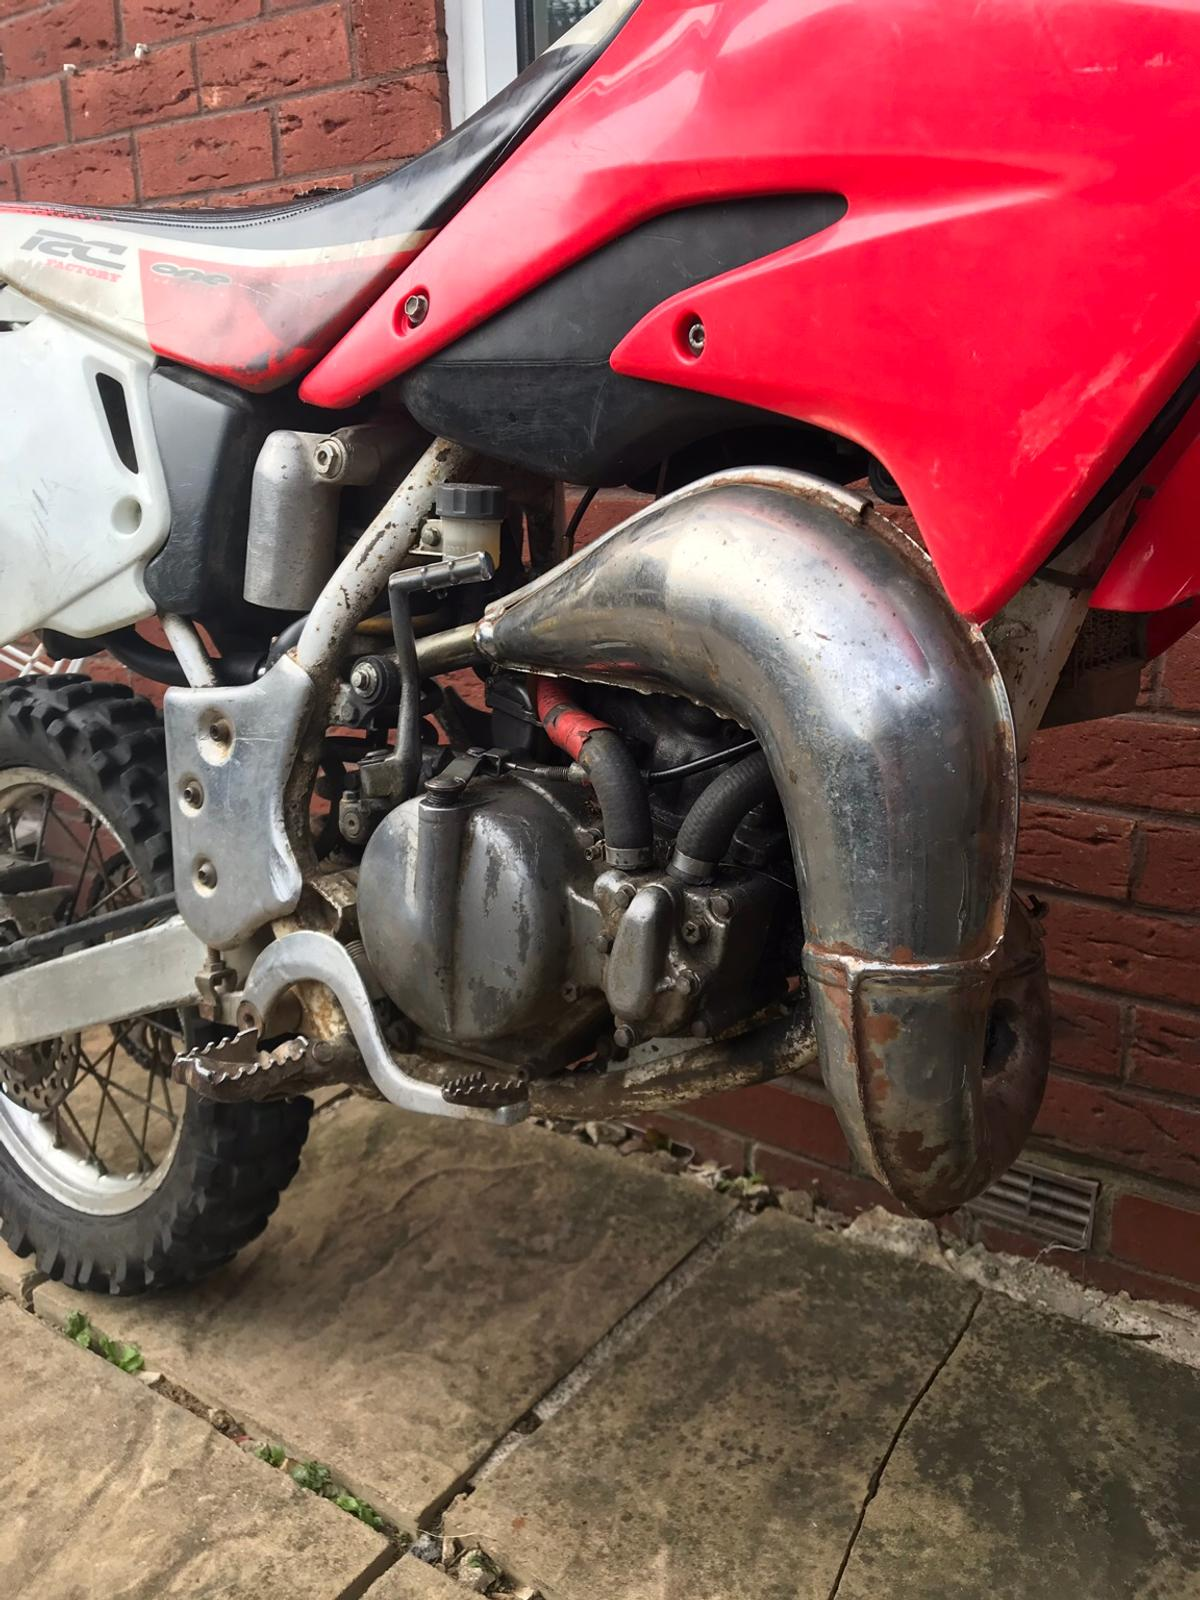 Honda Cr80 2001 in CV21 Rugby for £600 00 for sale - Shpock